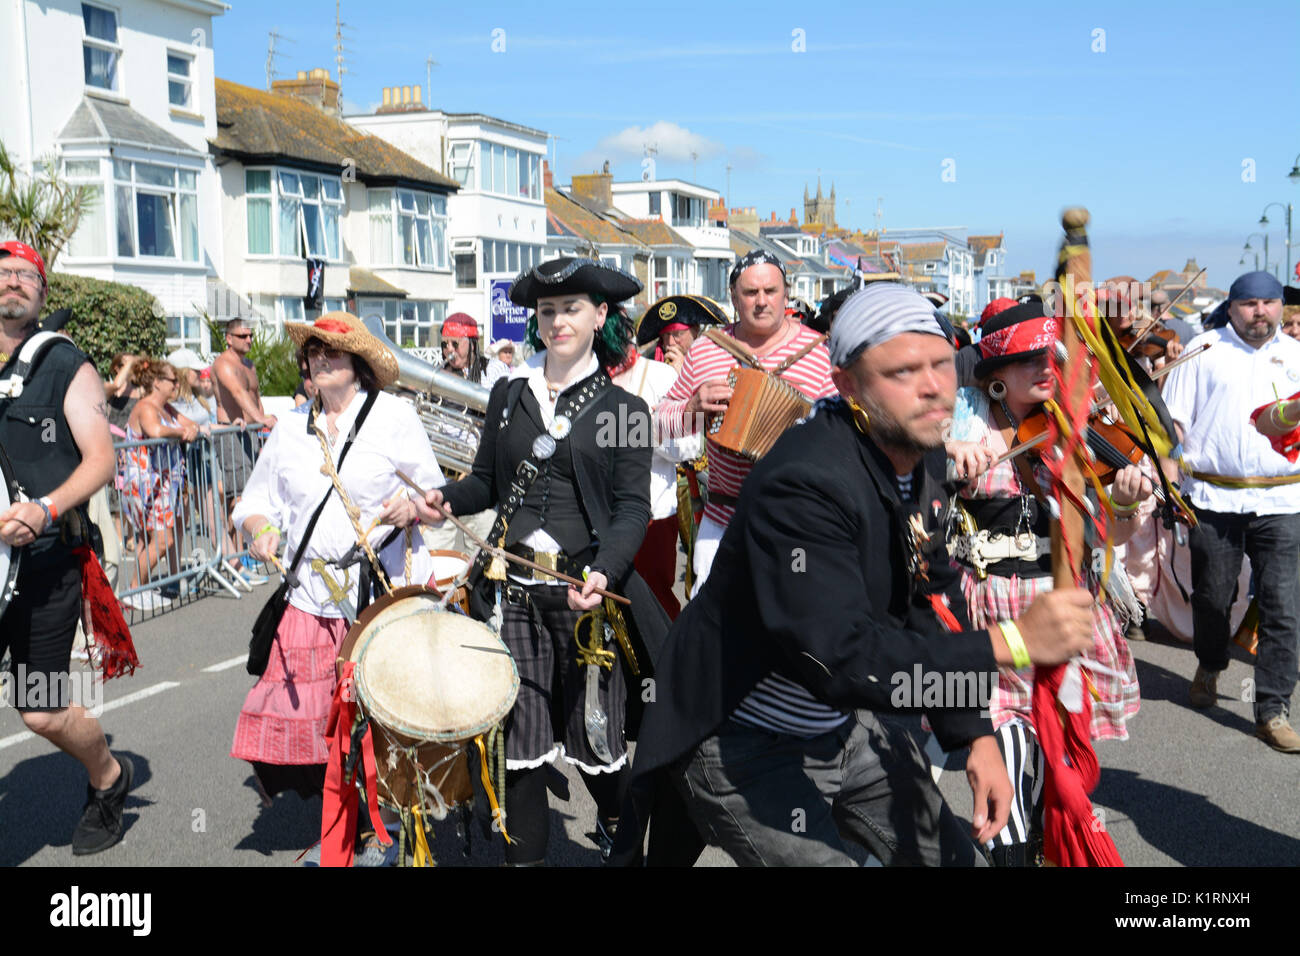 Penzance, Cornwall, UK. 27th August 2017. Pirates gather on the seafront at Penzance in an attempt to break the Guiness world record for the greatest number of pirates in place.  In 2014 Penzance narrowly failed to regain the title from Hastings, as they were 77 pirates short – most of whom were drinking outside the seafront pubs – and hence outside of the official counting zone.  They need 15000 pirates to win the event this year.     Credit: Simon Maycock/Alamy Live News Stock Photo